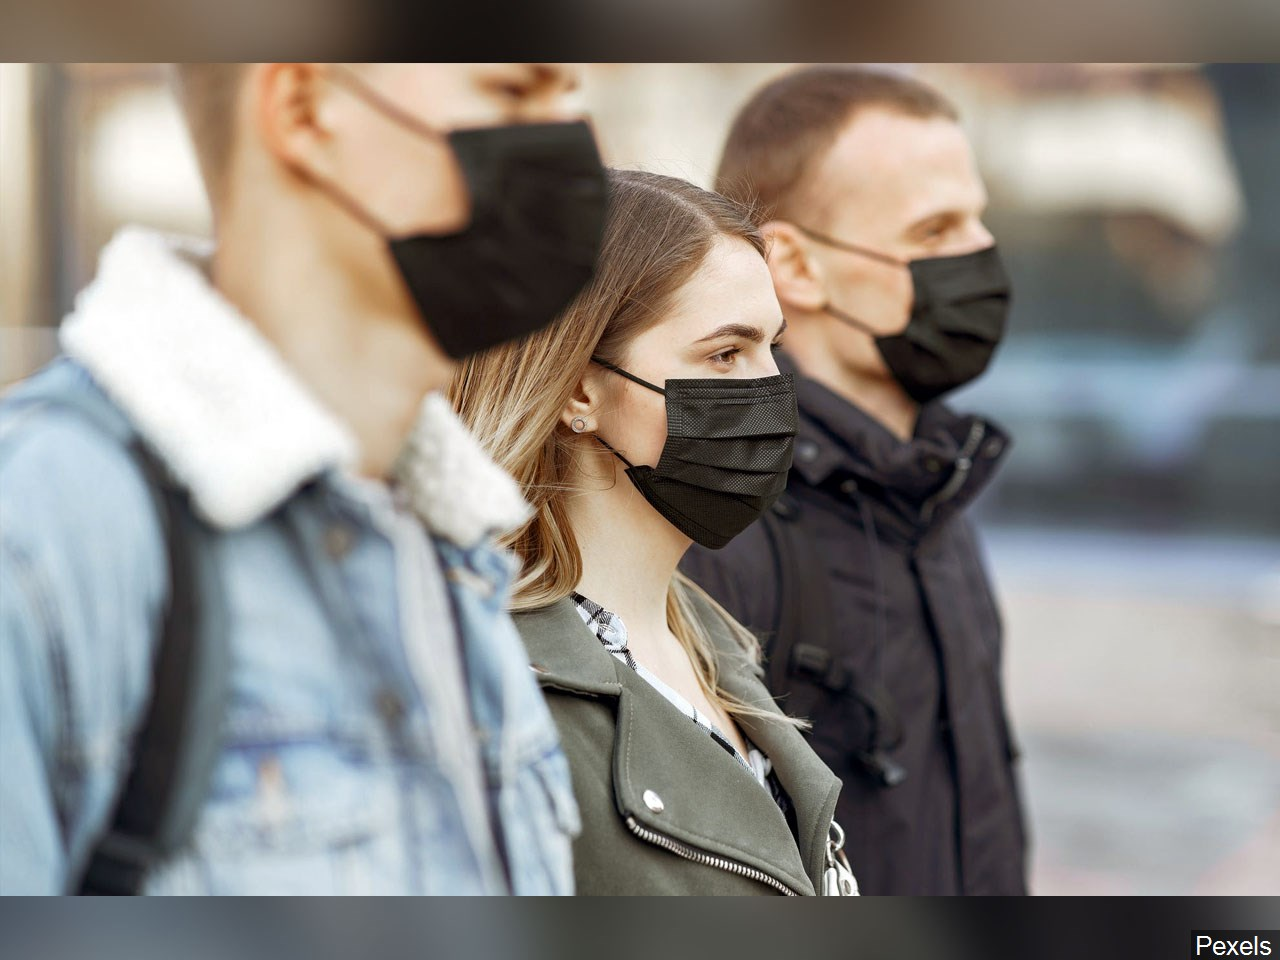 California To wait until June 15 to ditch COVID-19 mask requirement